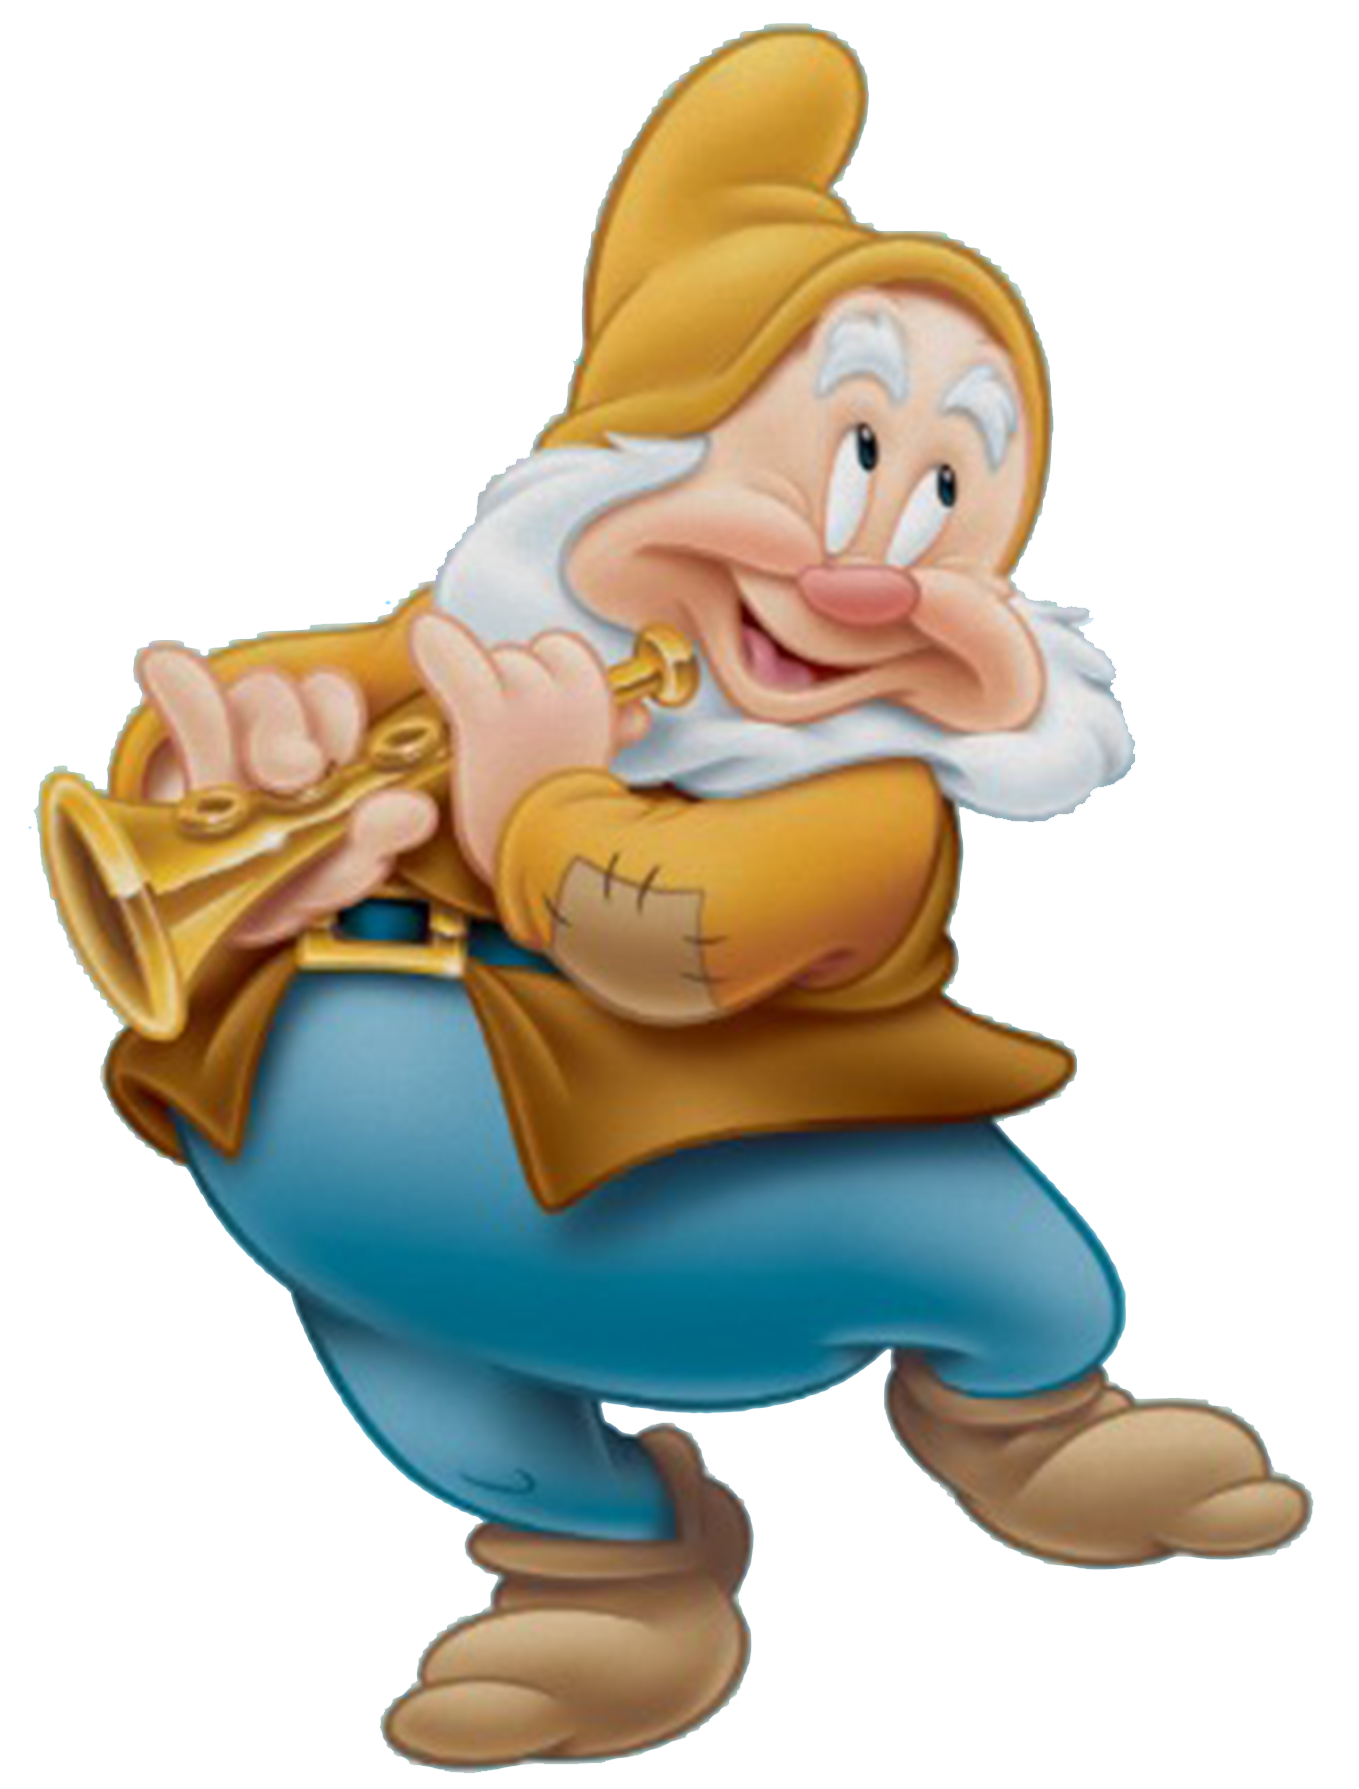 Dwarf PNG images free download.